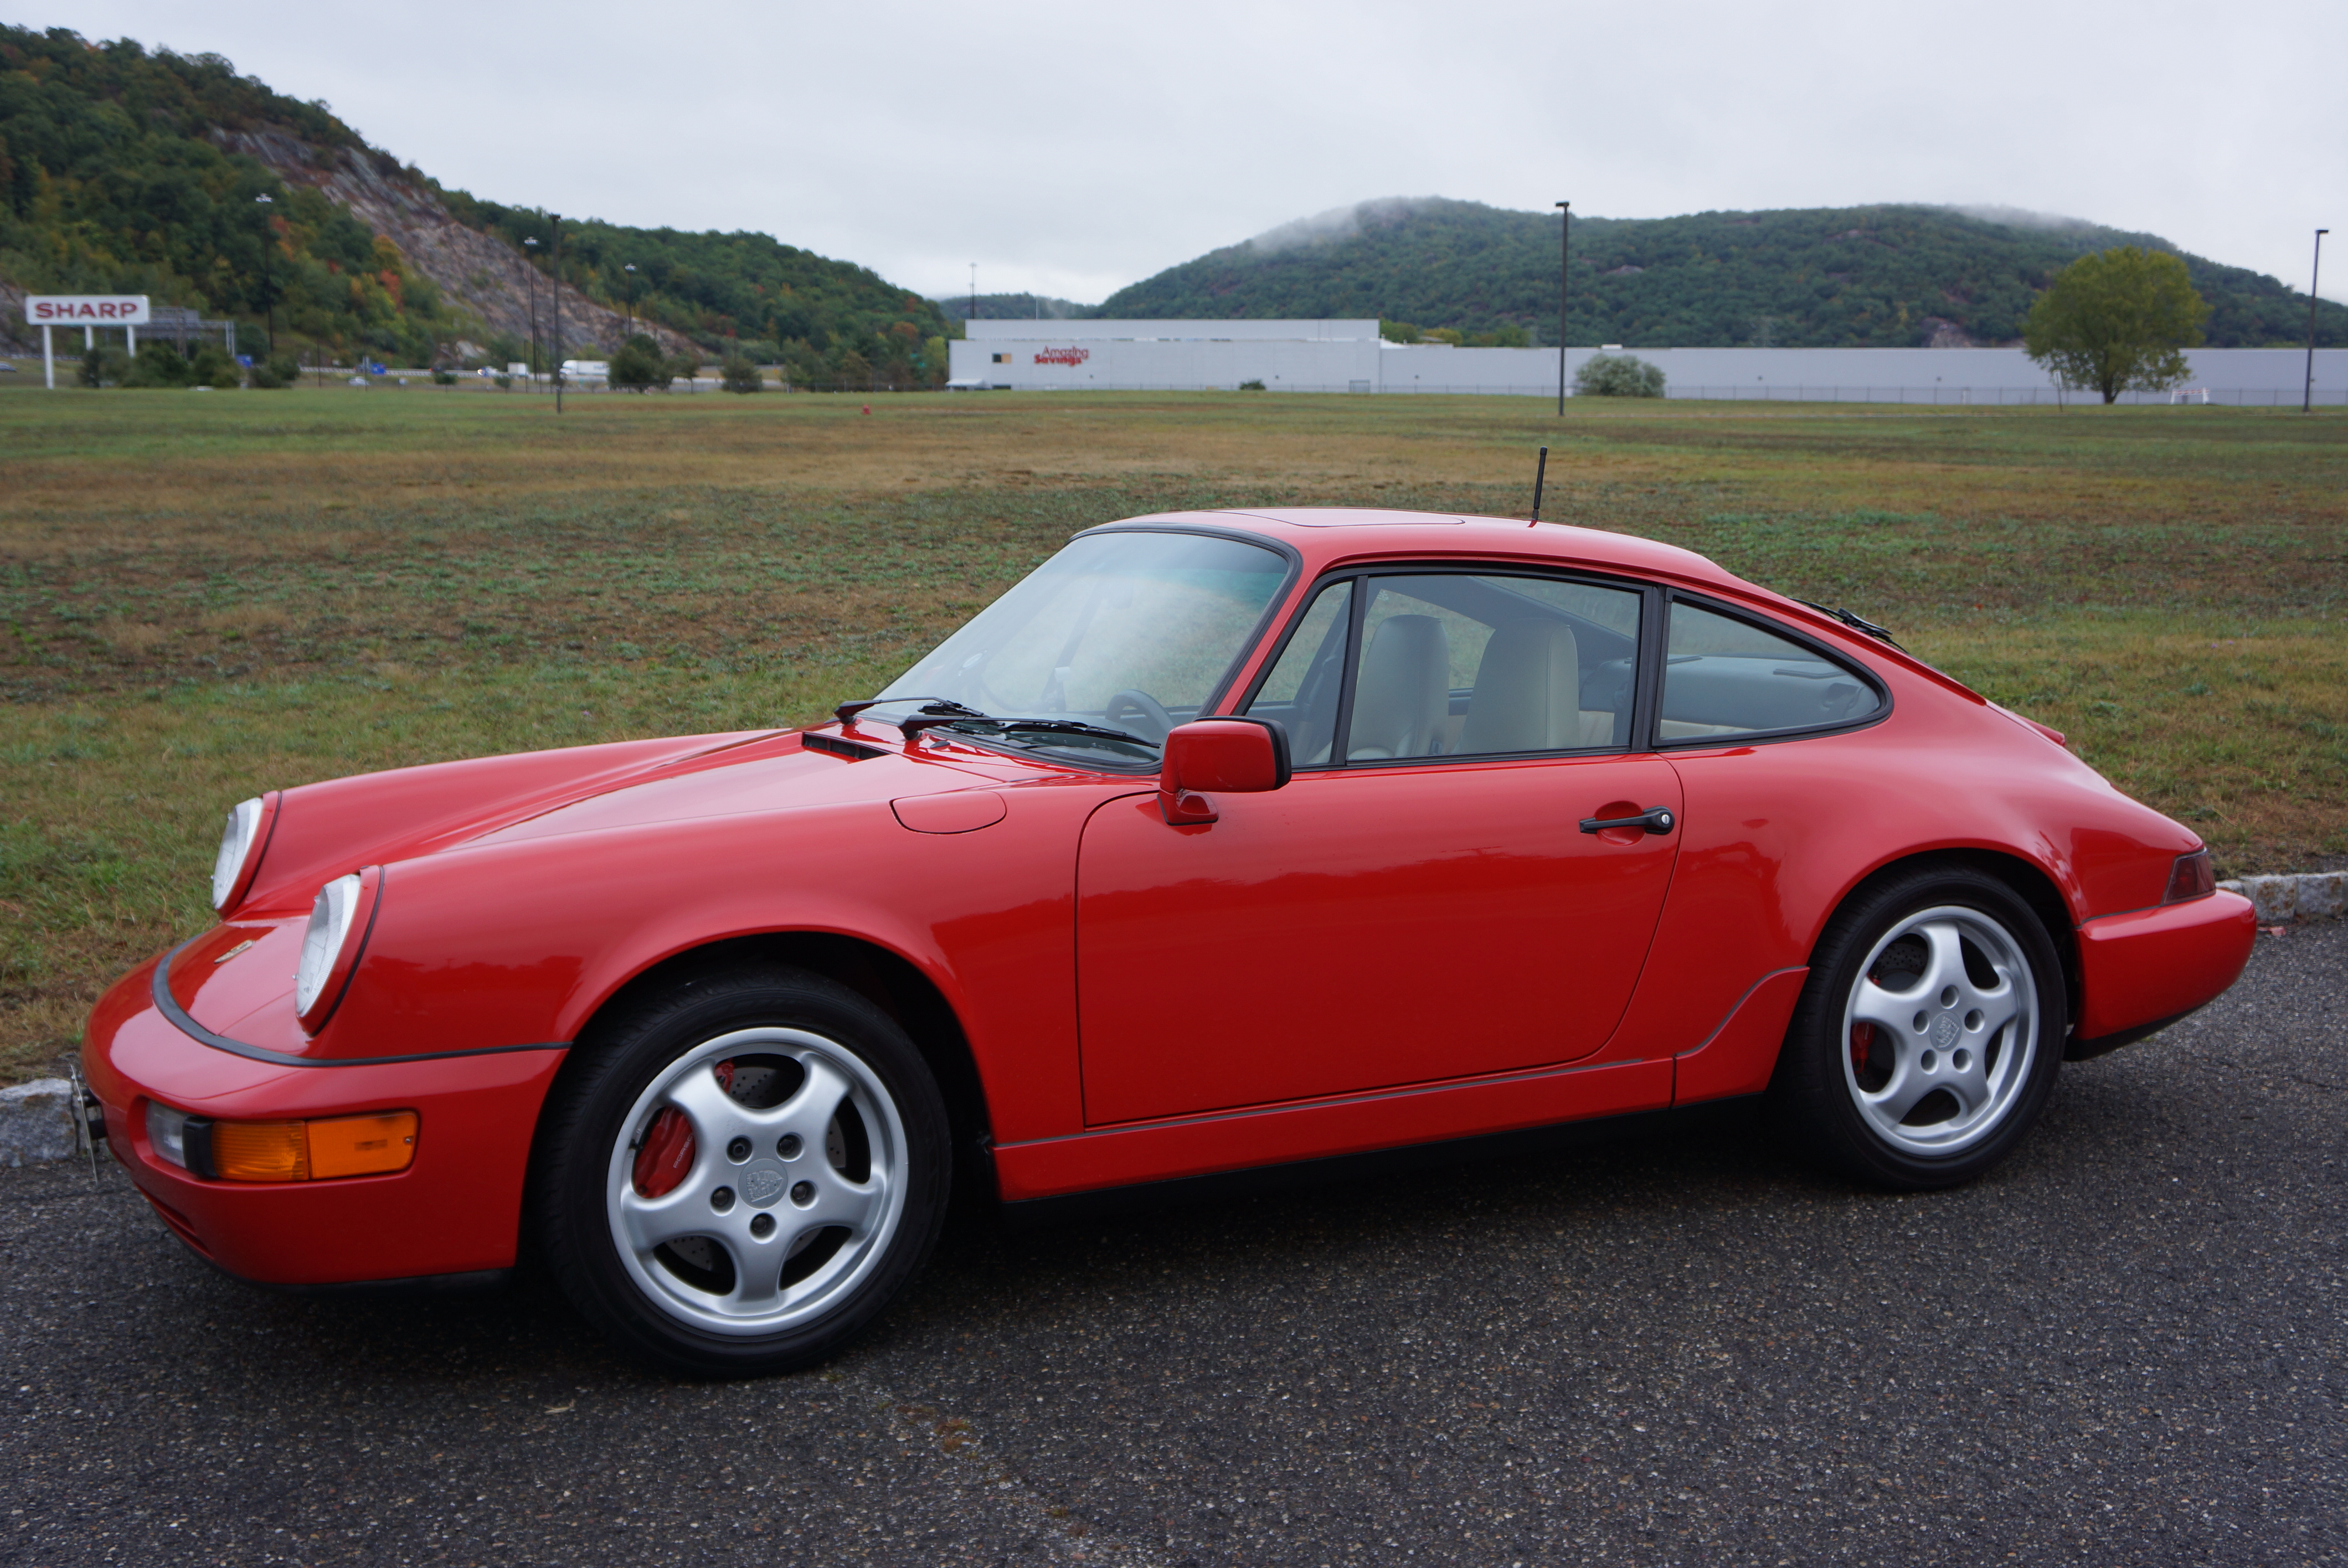 Dave's RED 911